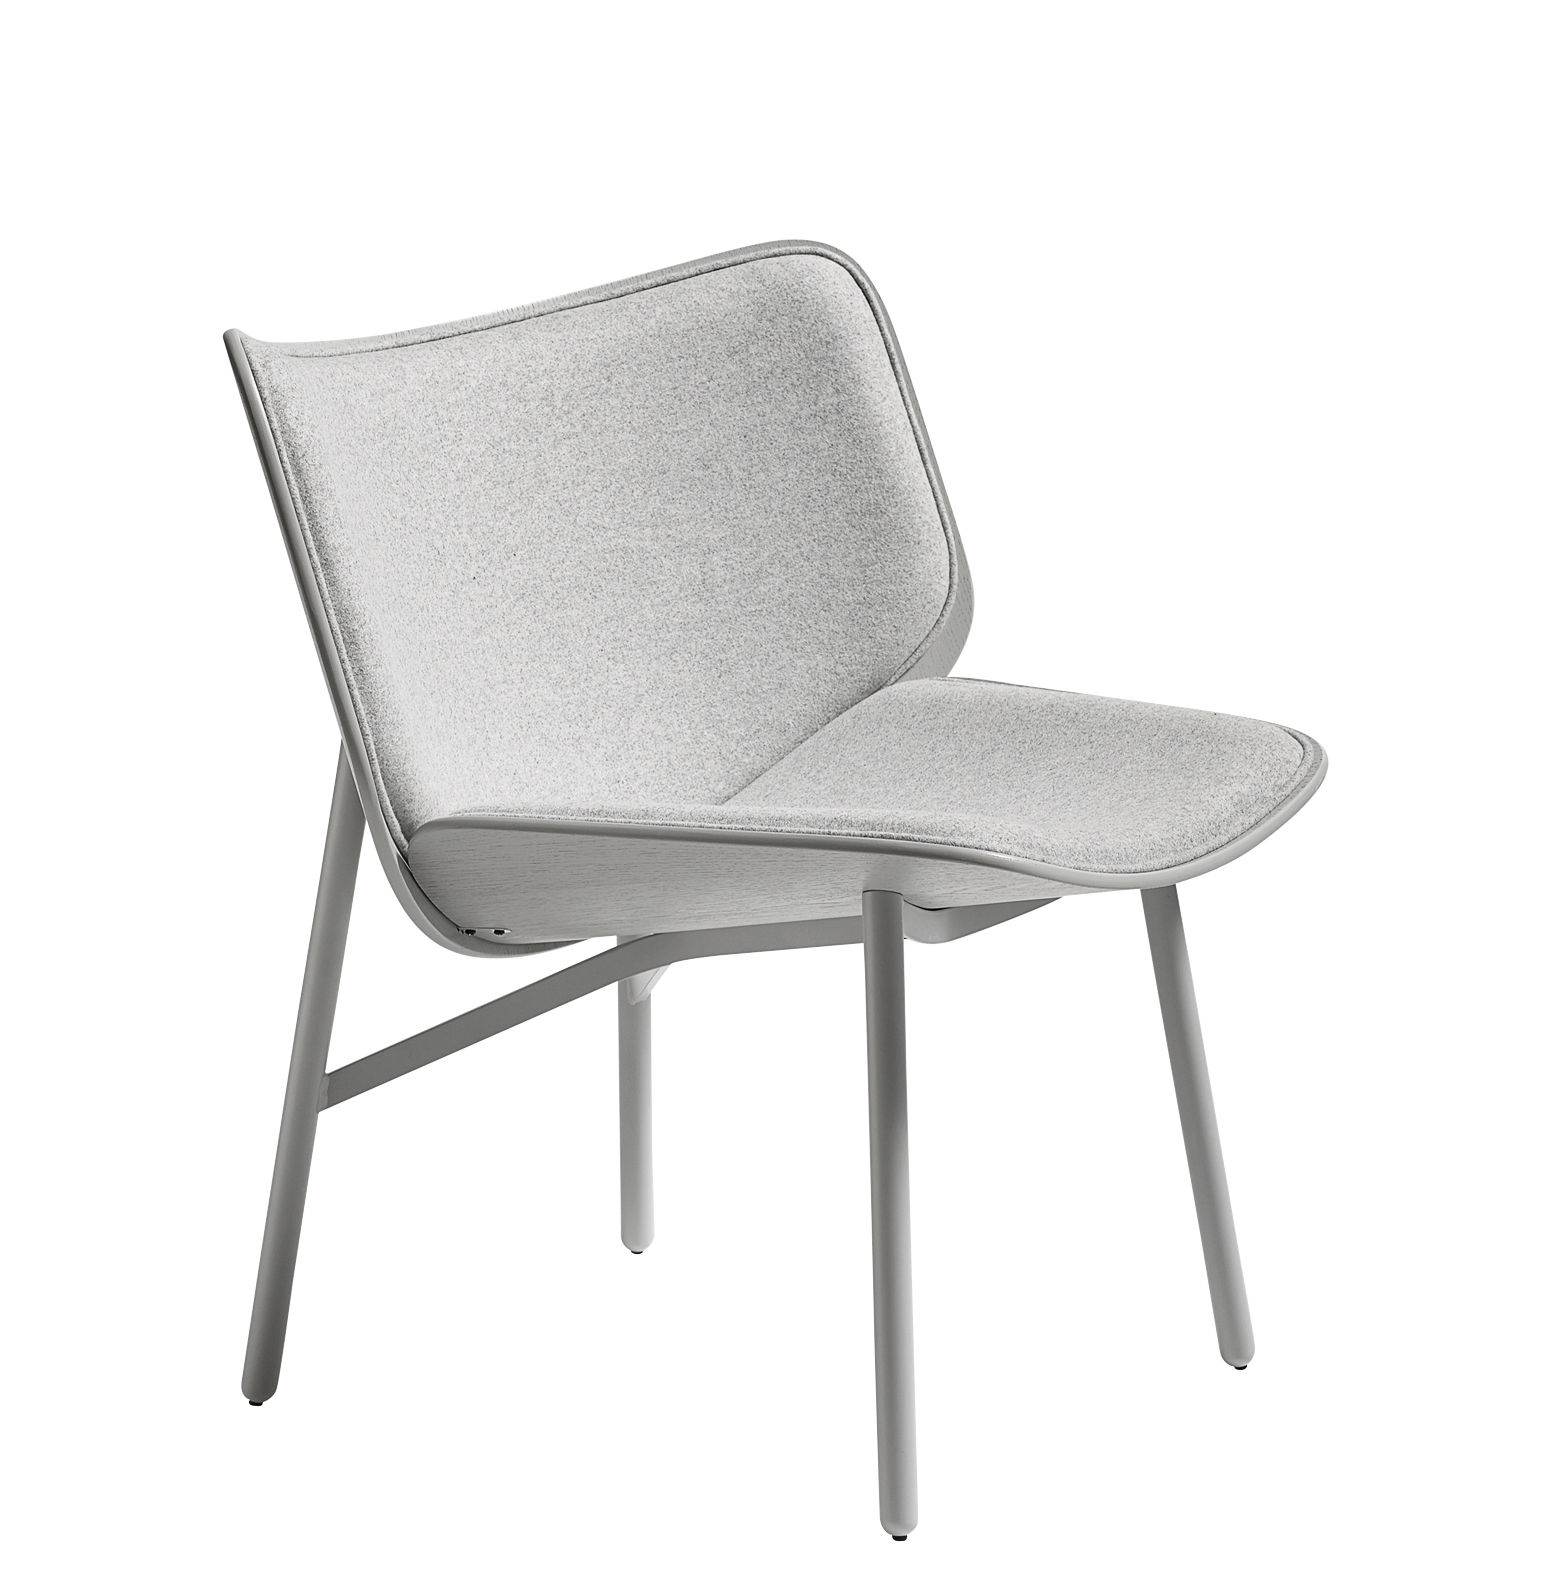 Furniture - Armchairs - Dapper Padded armchair - / Fabric by Hay - Grey - Epoxy lacquered steel, Foam, Kvadrat fabric, Tinted oak plywood